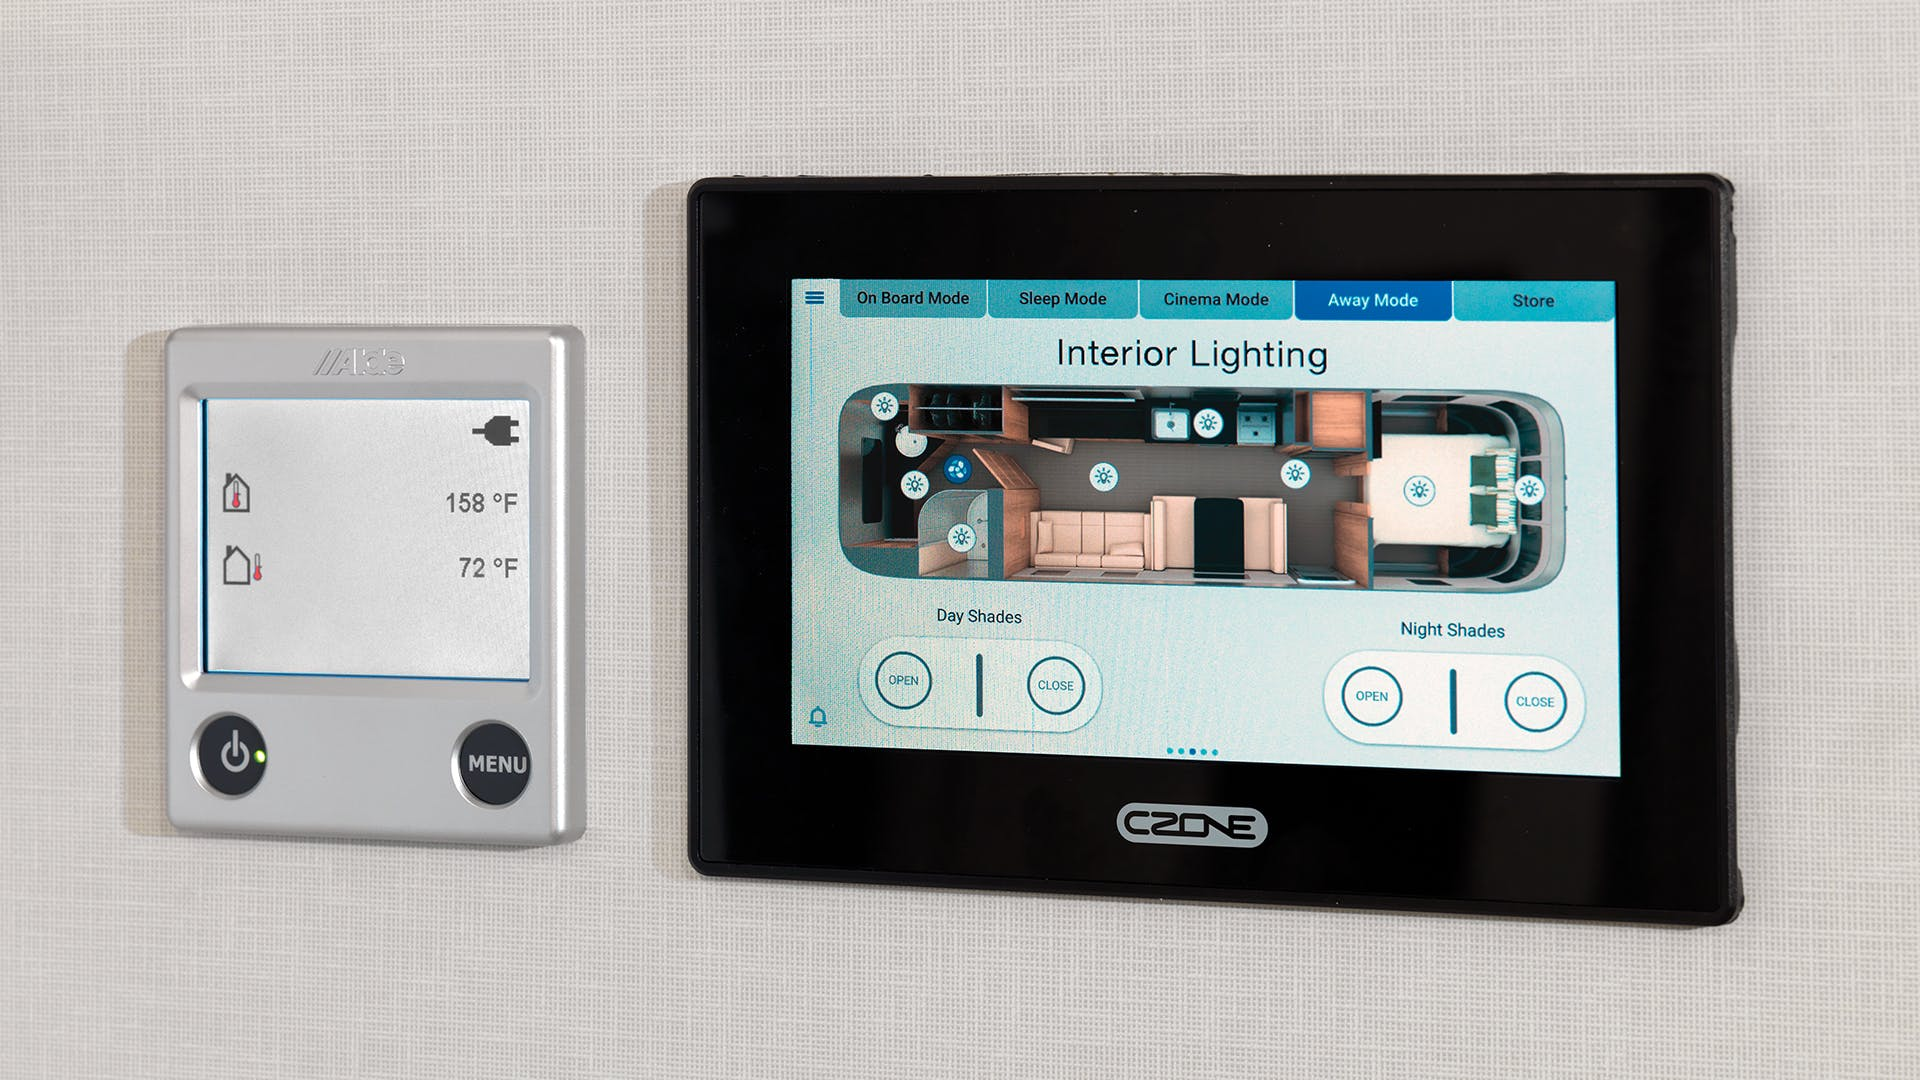 Airstream-Classic-Touch-7-cZone-Control-Panel-Interior-Lighting-Feature